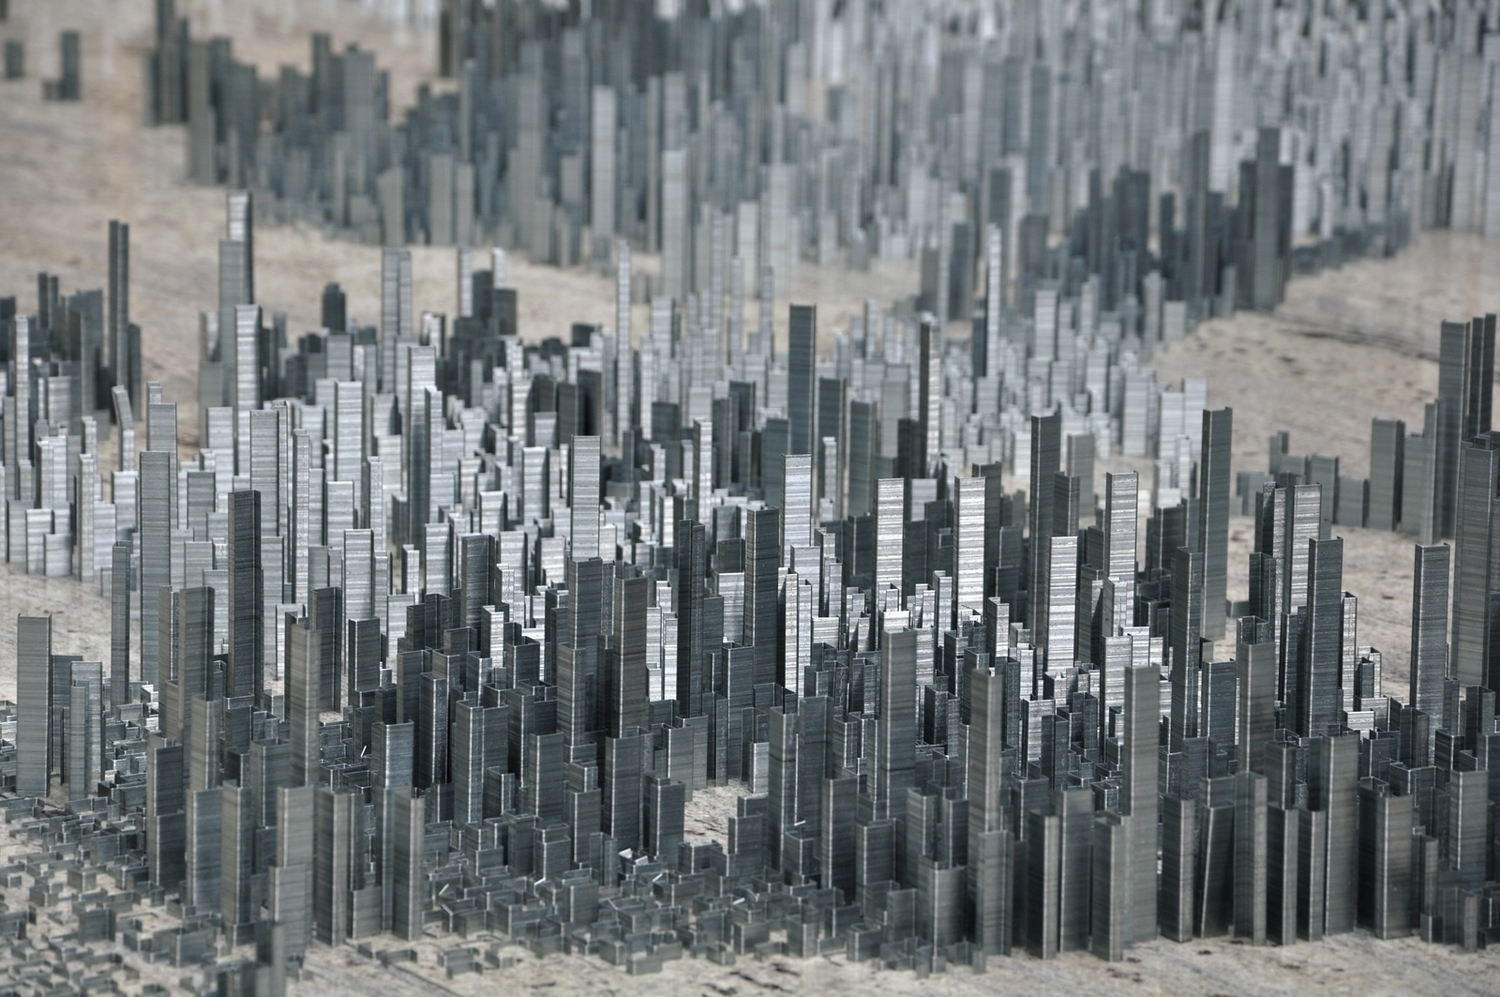 Peter Root – 100,000 staples installation